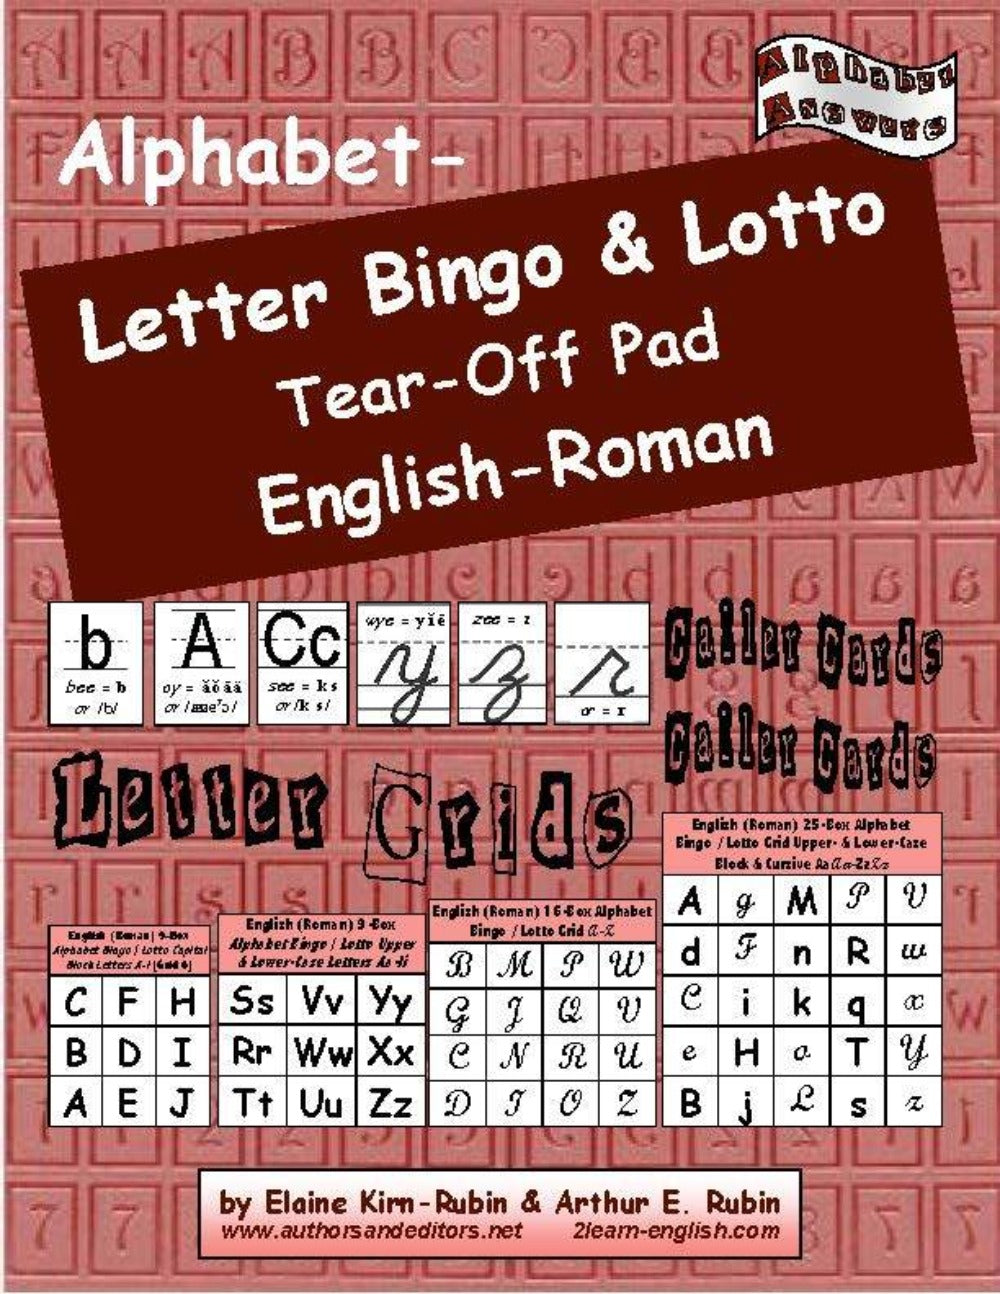 Alphabet Letters Bingo/Lotto, English-Roman: 15 Games of 8 Grids each + Caller Cards